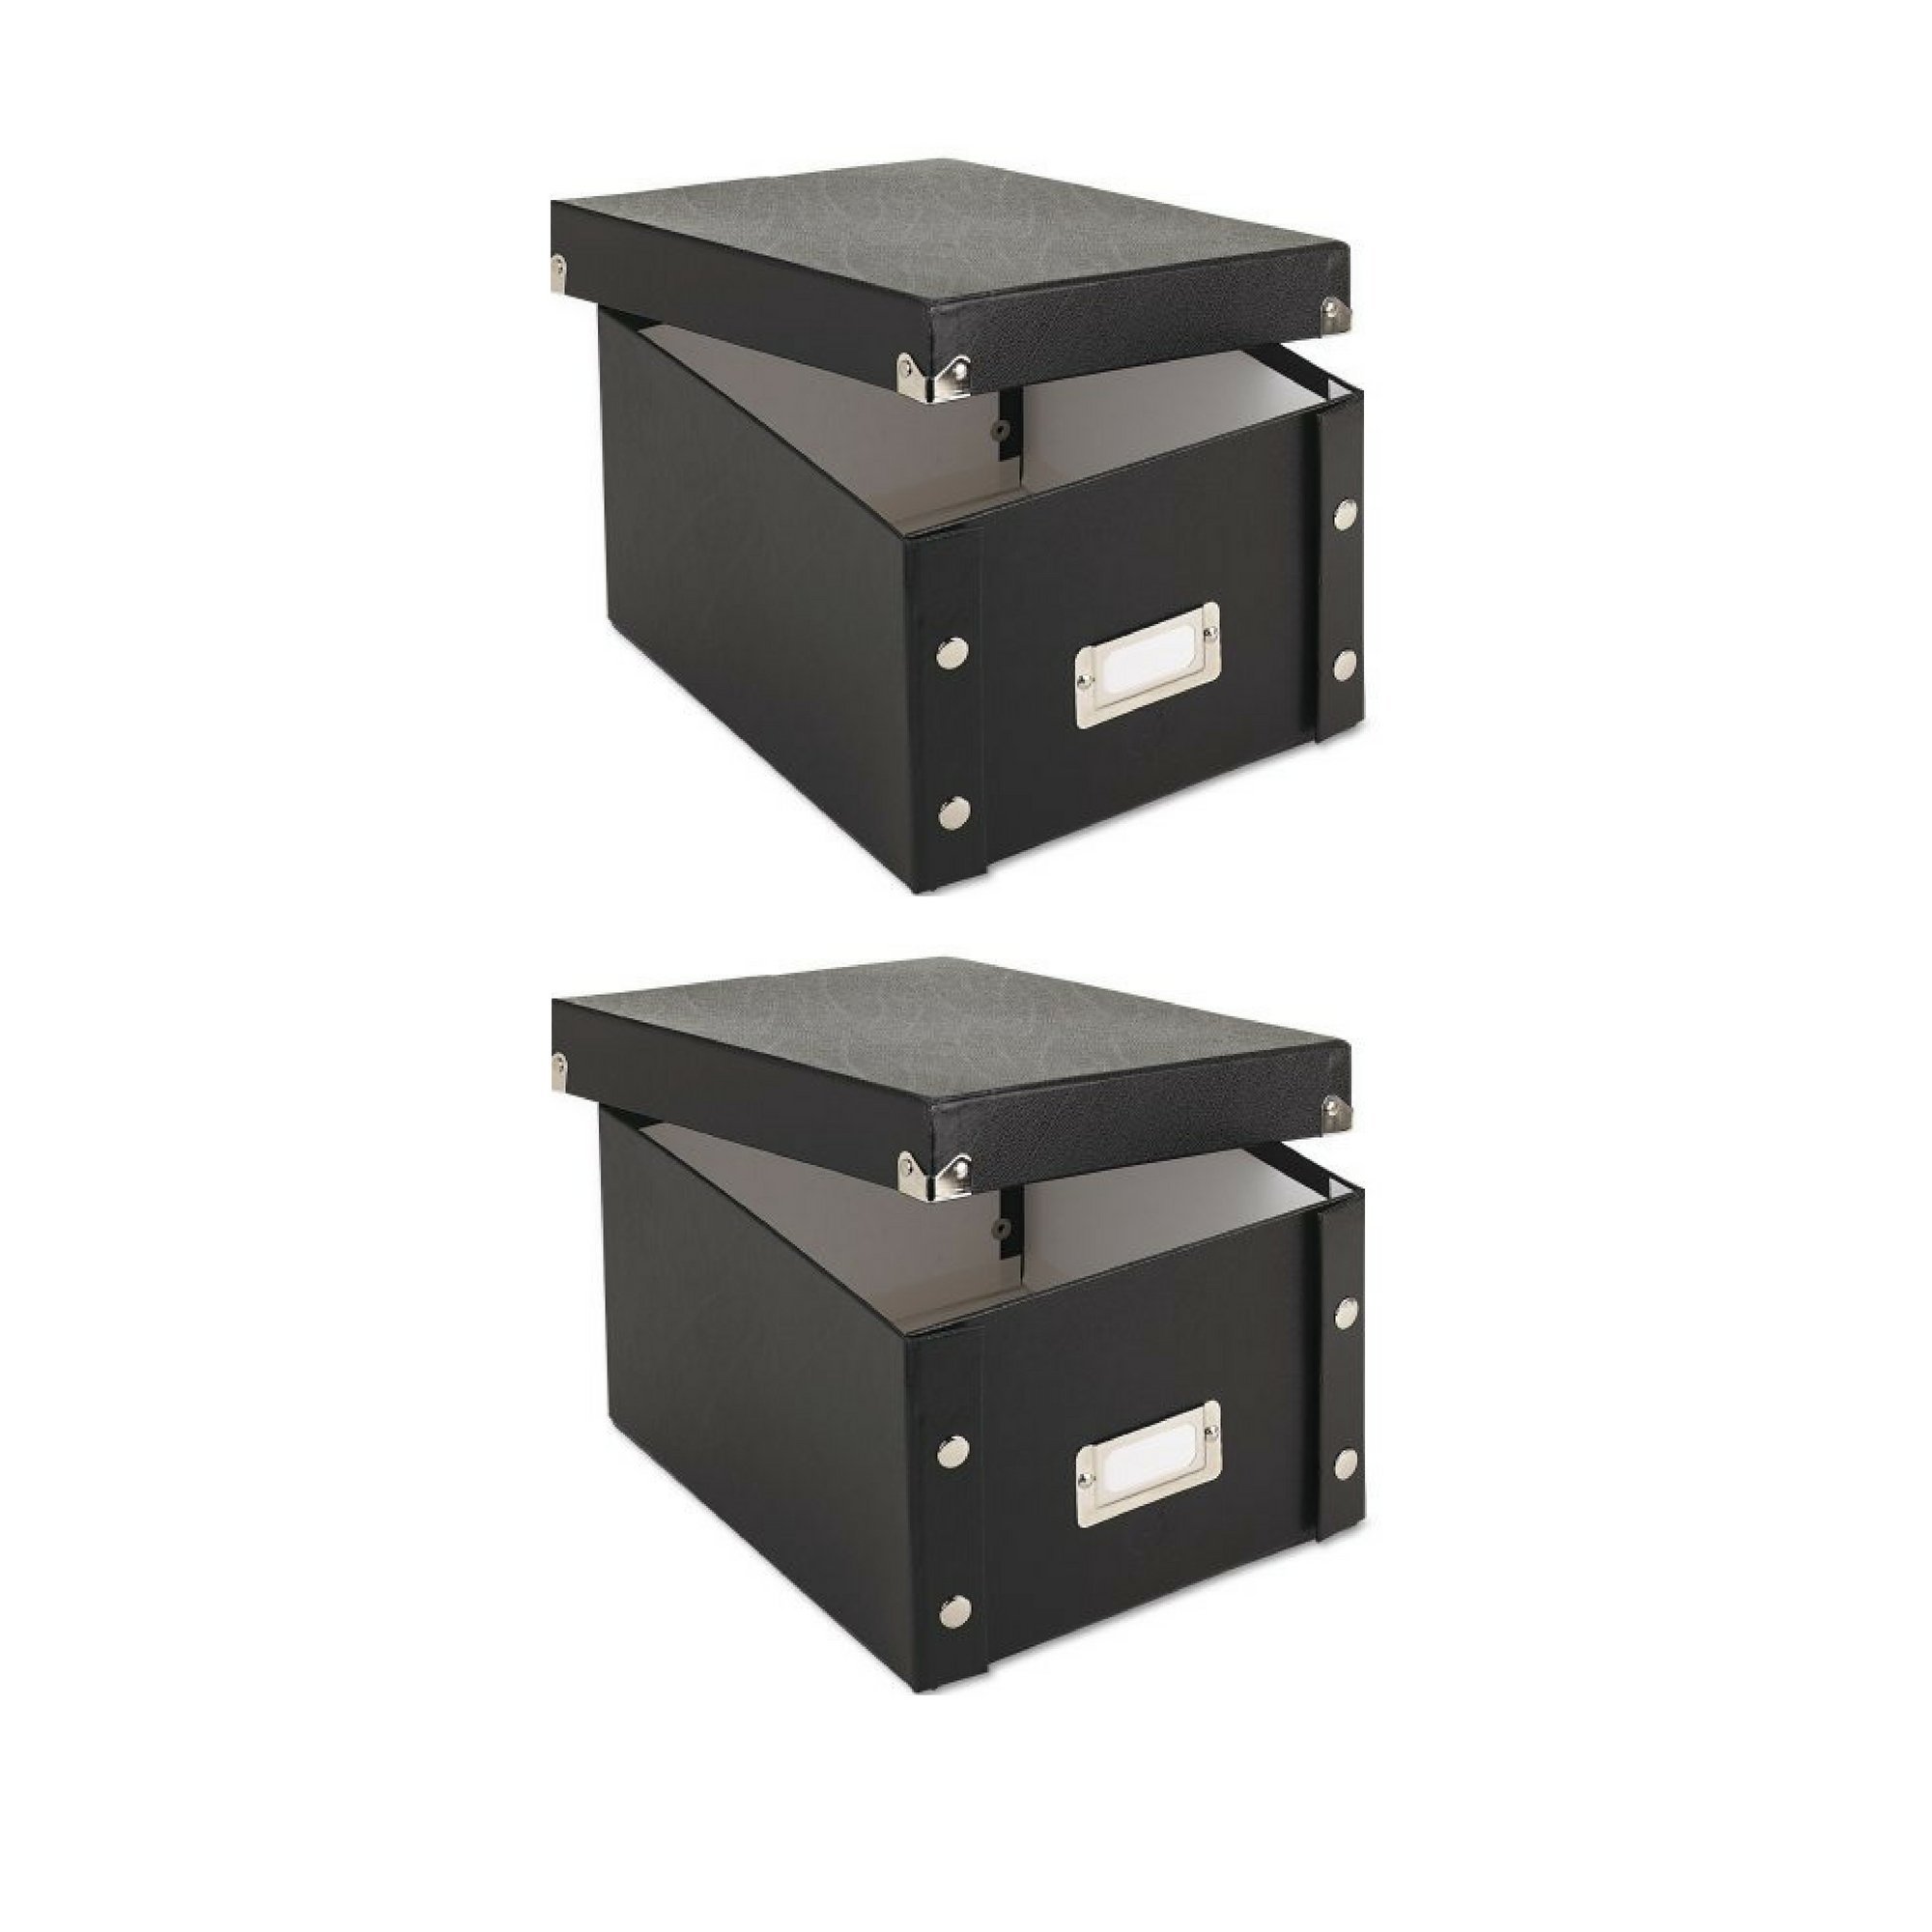 Snap-N-Store Collapsible Index Card File Box, Holds 1,100 5 x 8 Cards, Black - 2